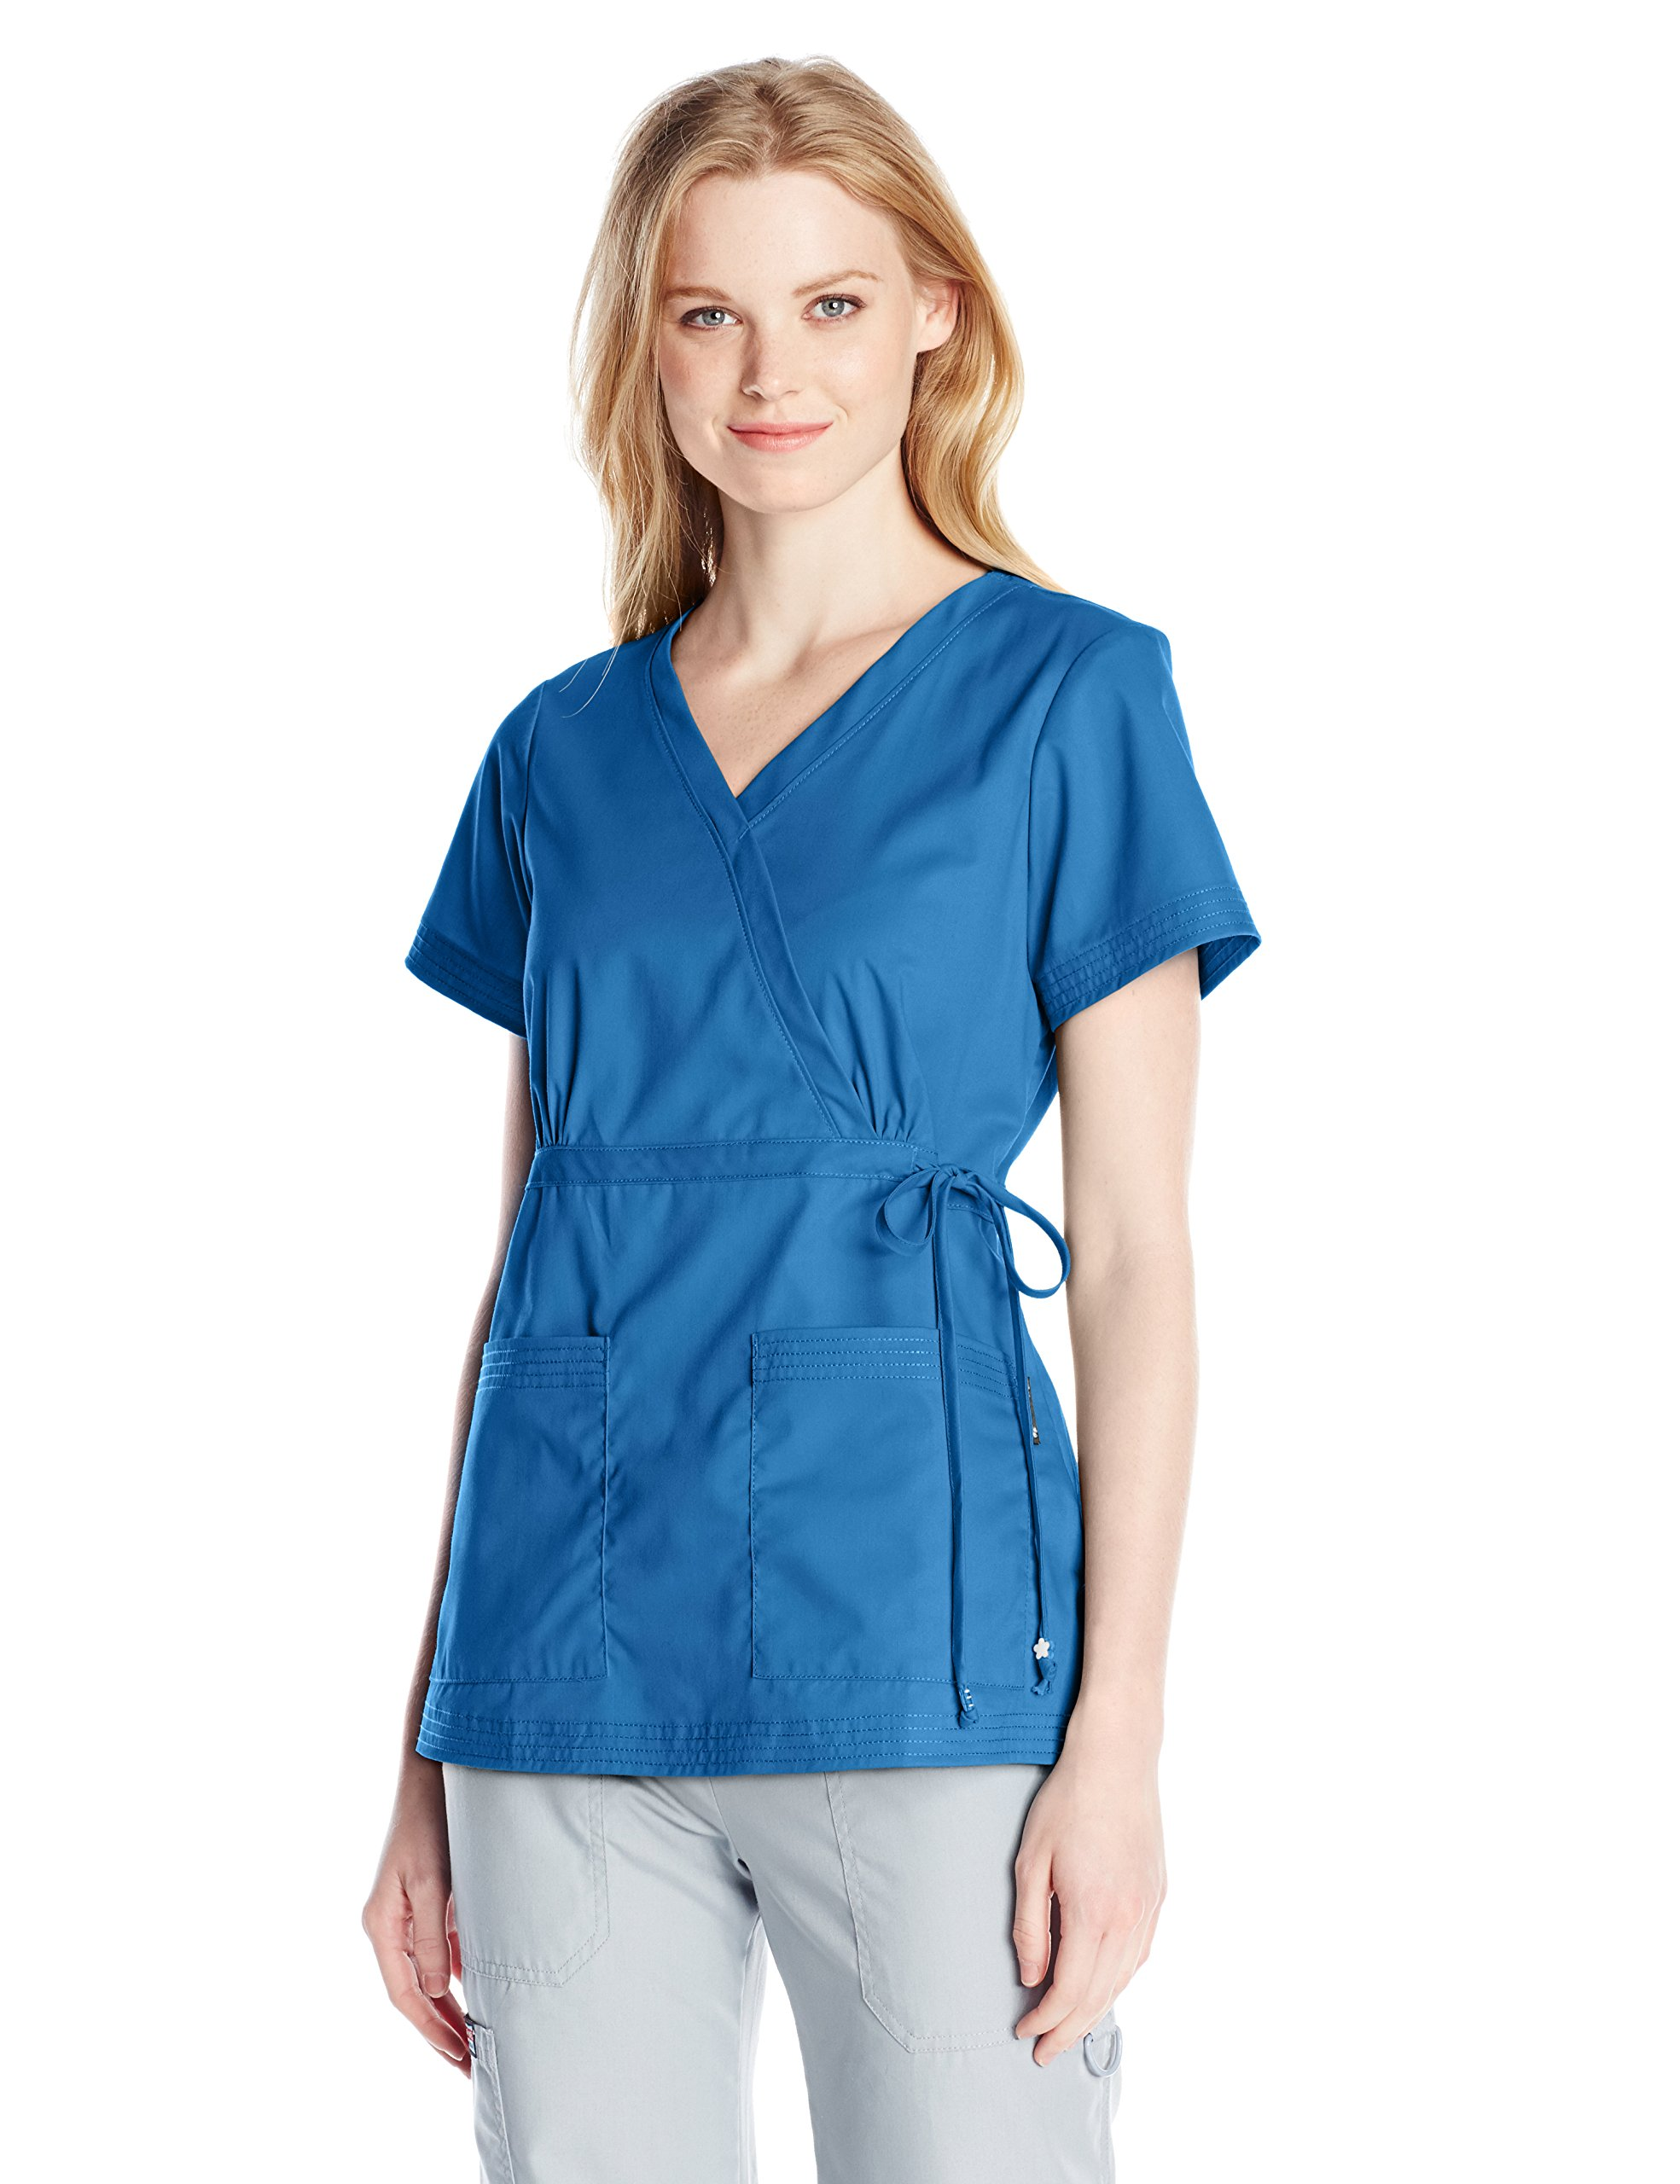 KOI Women's Katelyn Easy-Fit Mock-Wrap Scrub Top with Adjustable Side Tie, Royal, Medium